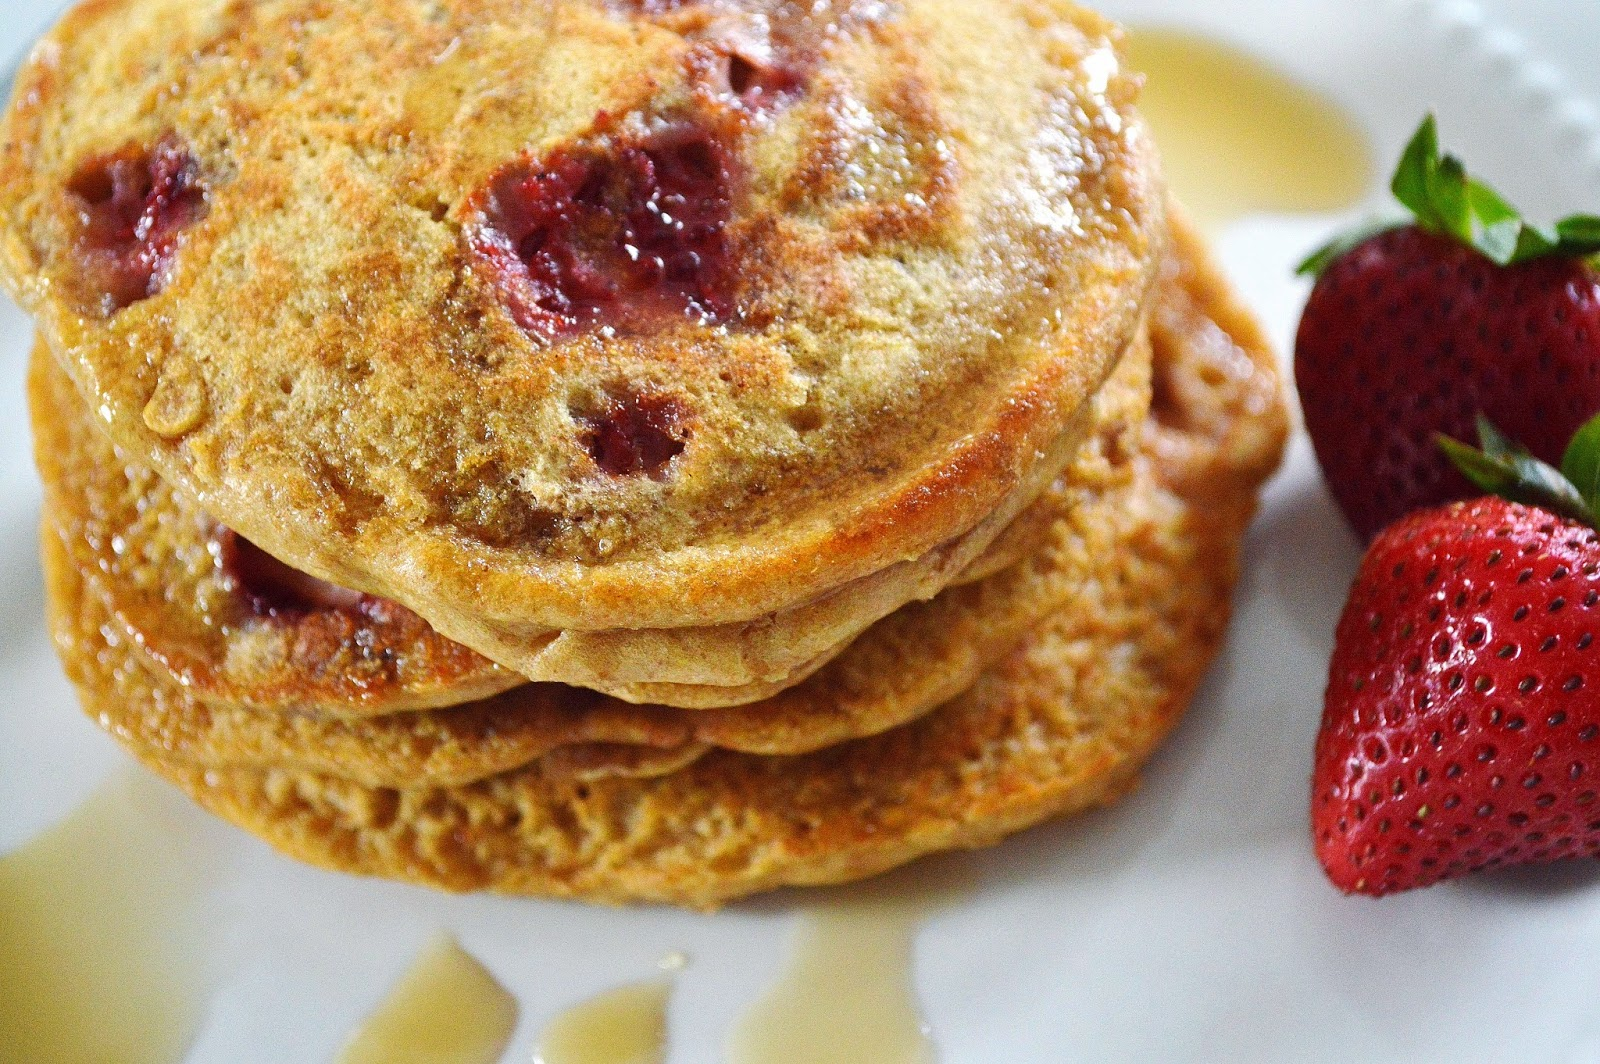 Download image Whole Wheat Strawberry Pancakes PC, Android, iPhone and ...